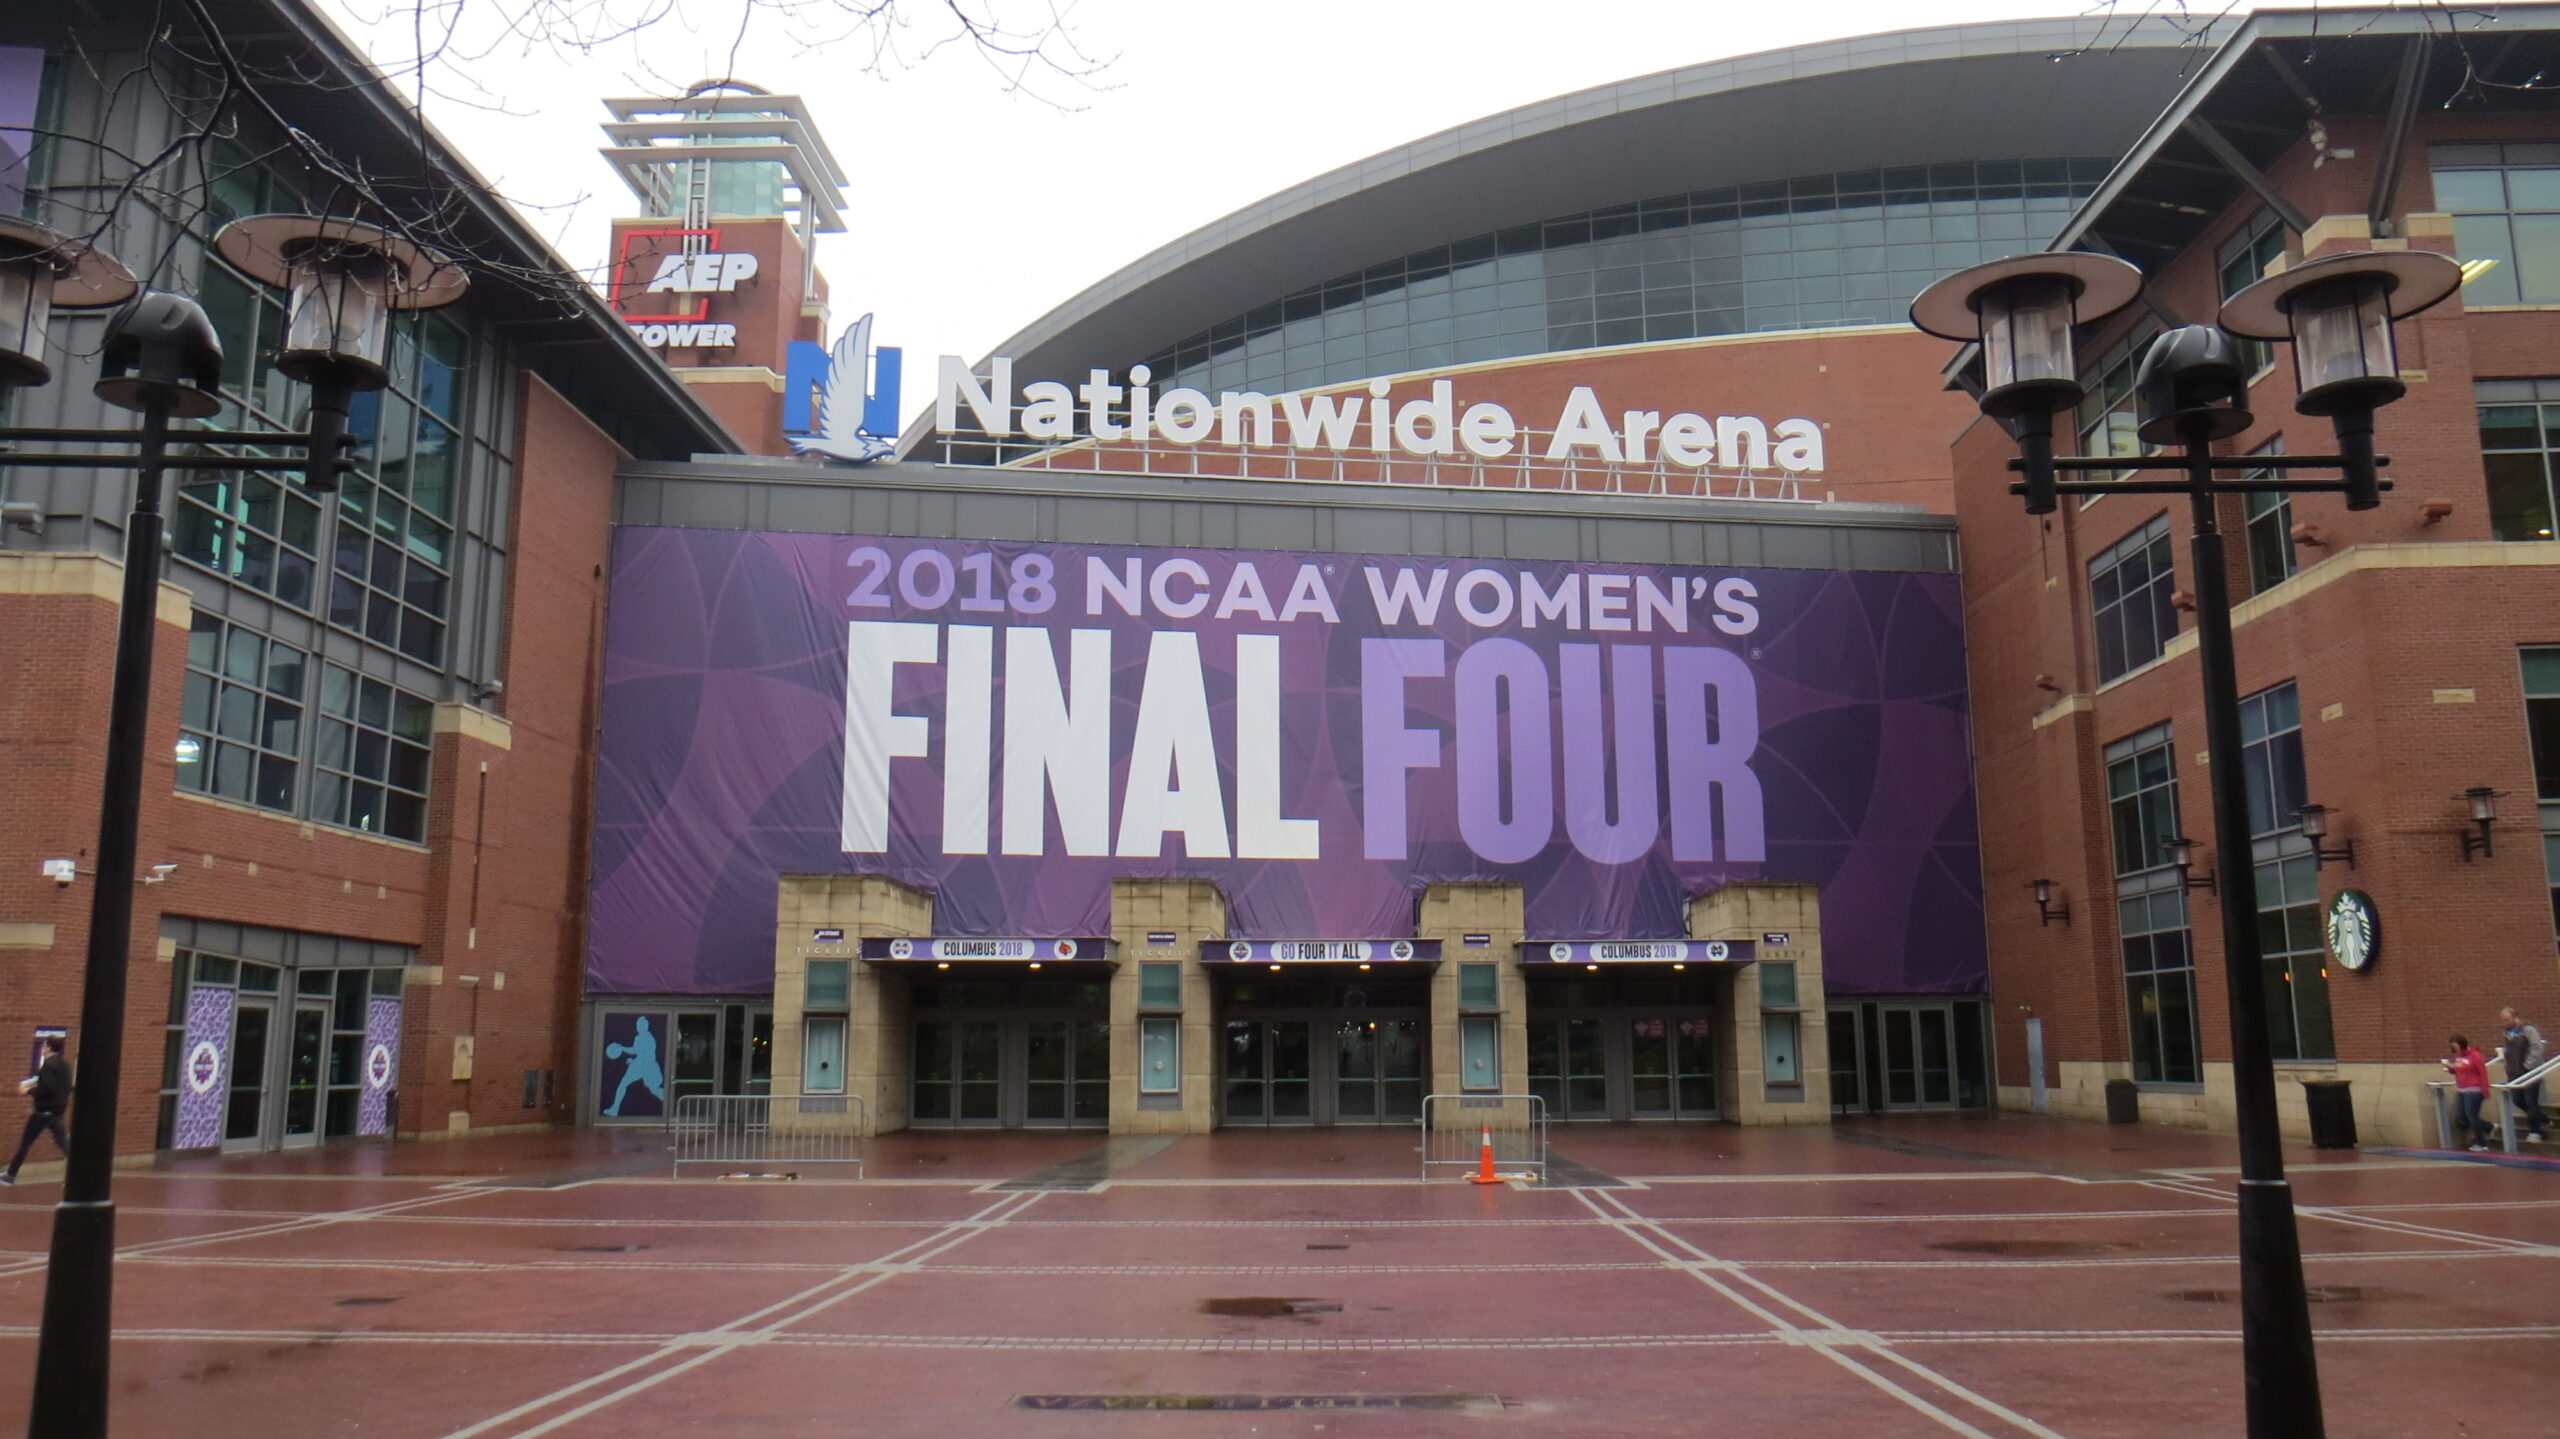 Statistically, 2018 Final Four in Columbus was a success story